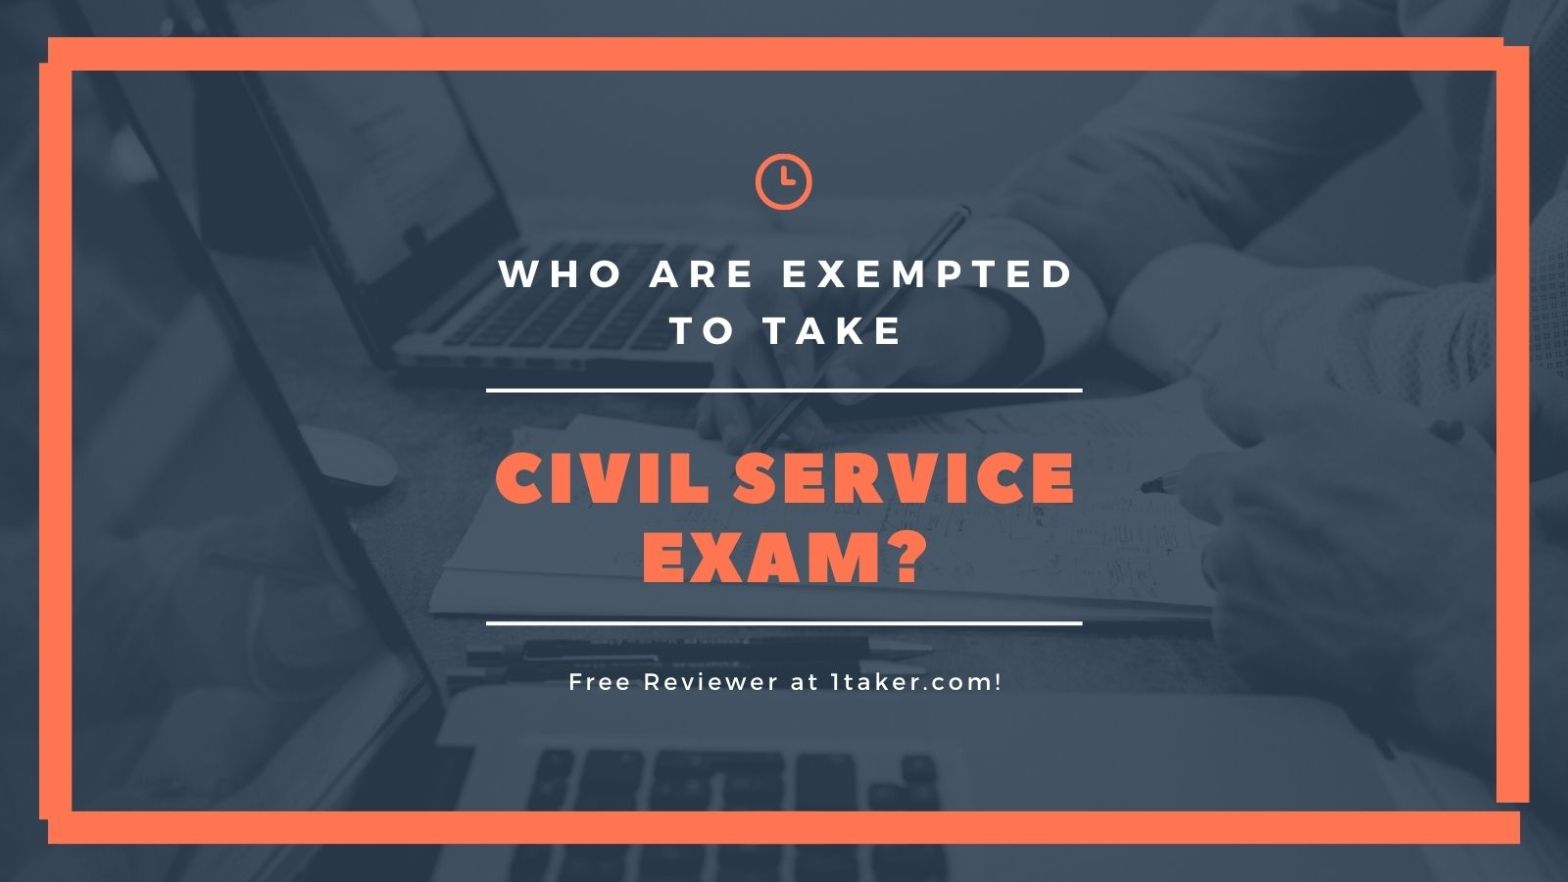 exempted in civil service exam philippines